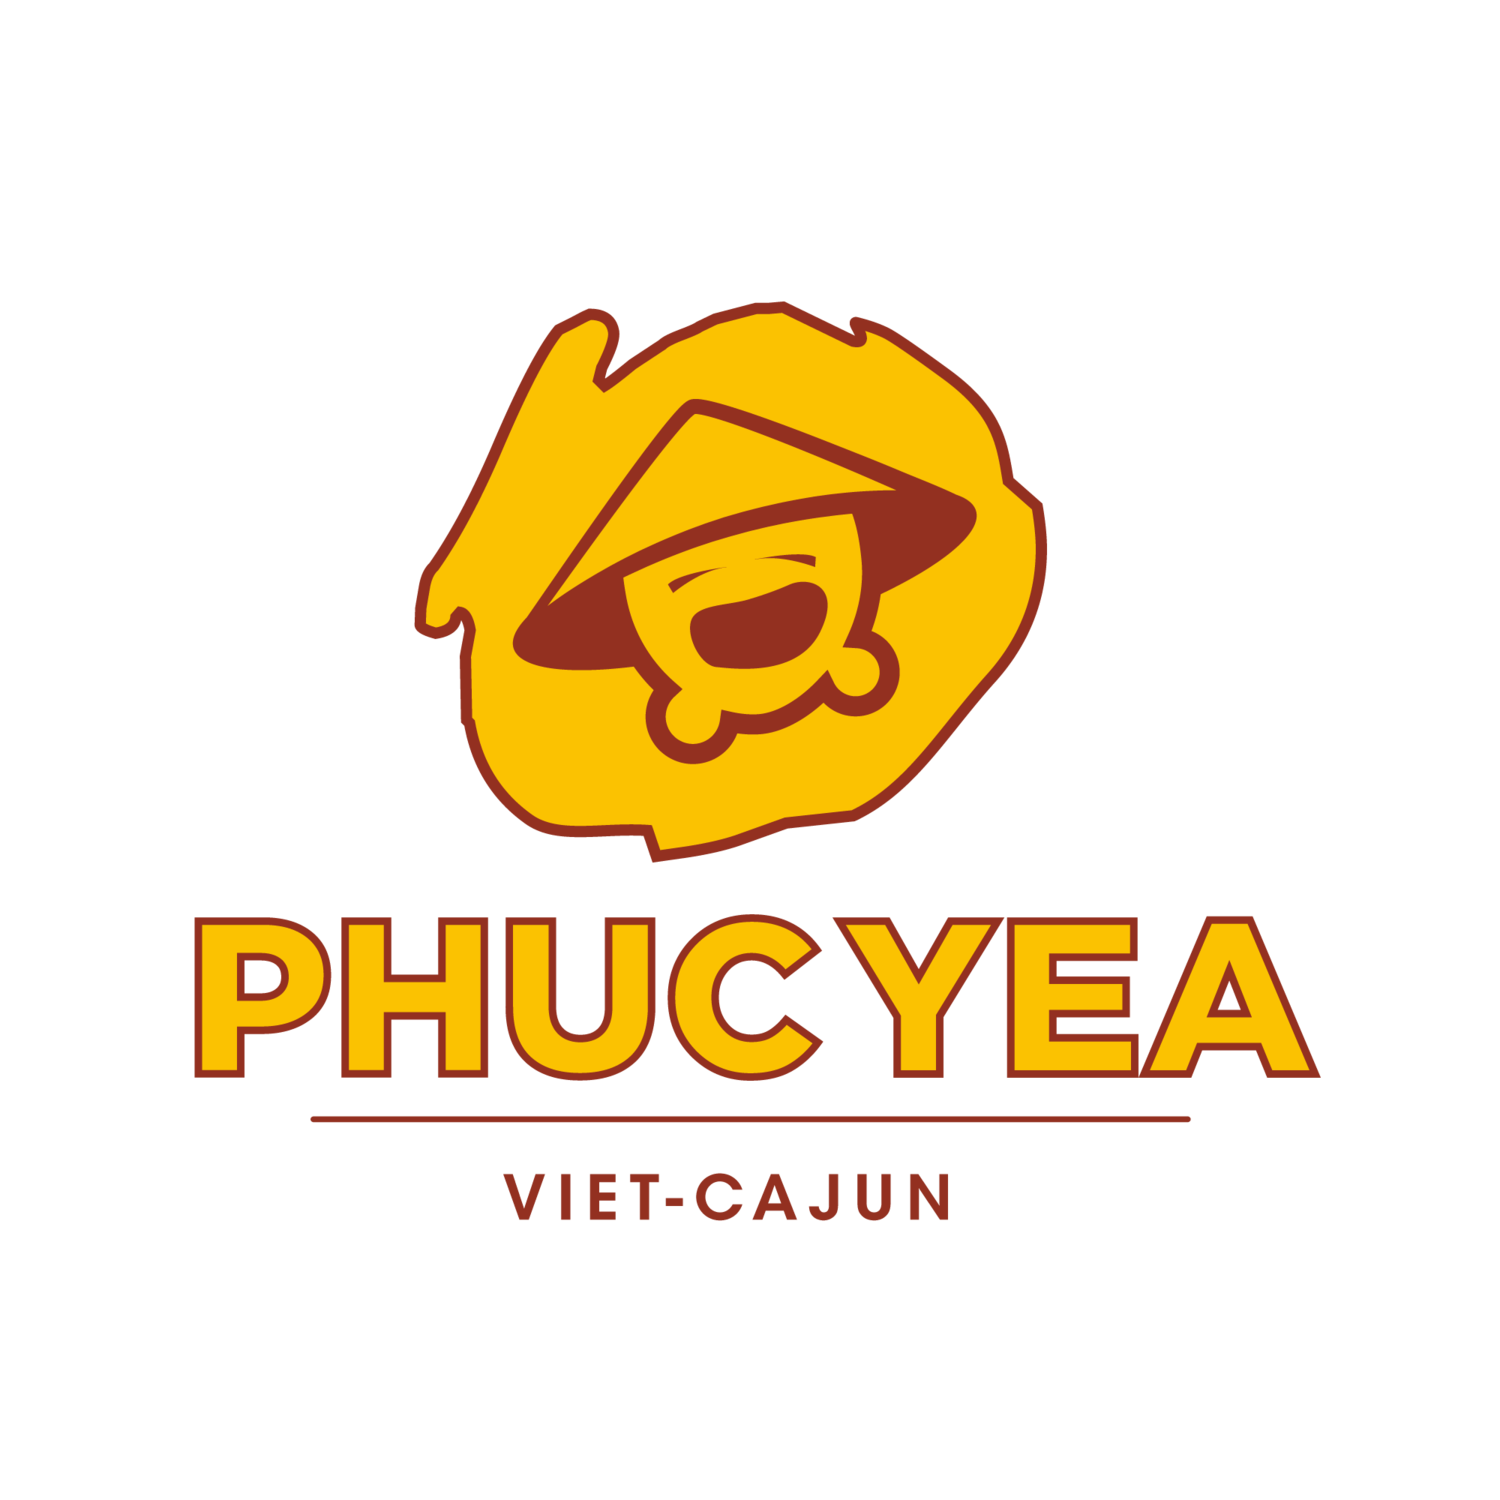 LET'S GET PHUC'D UP. PHUC YEA!